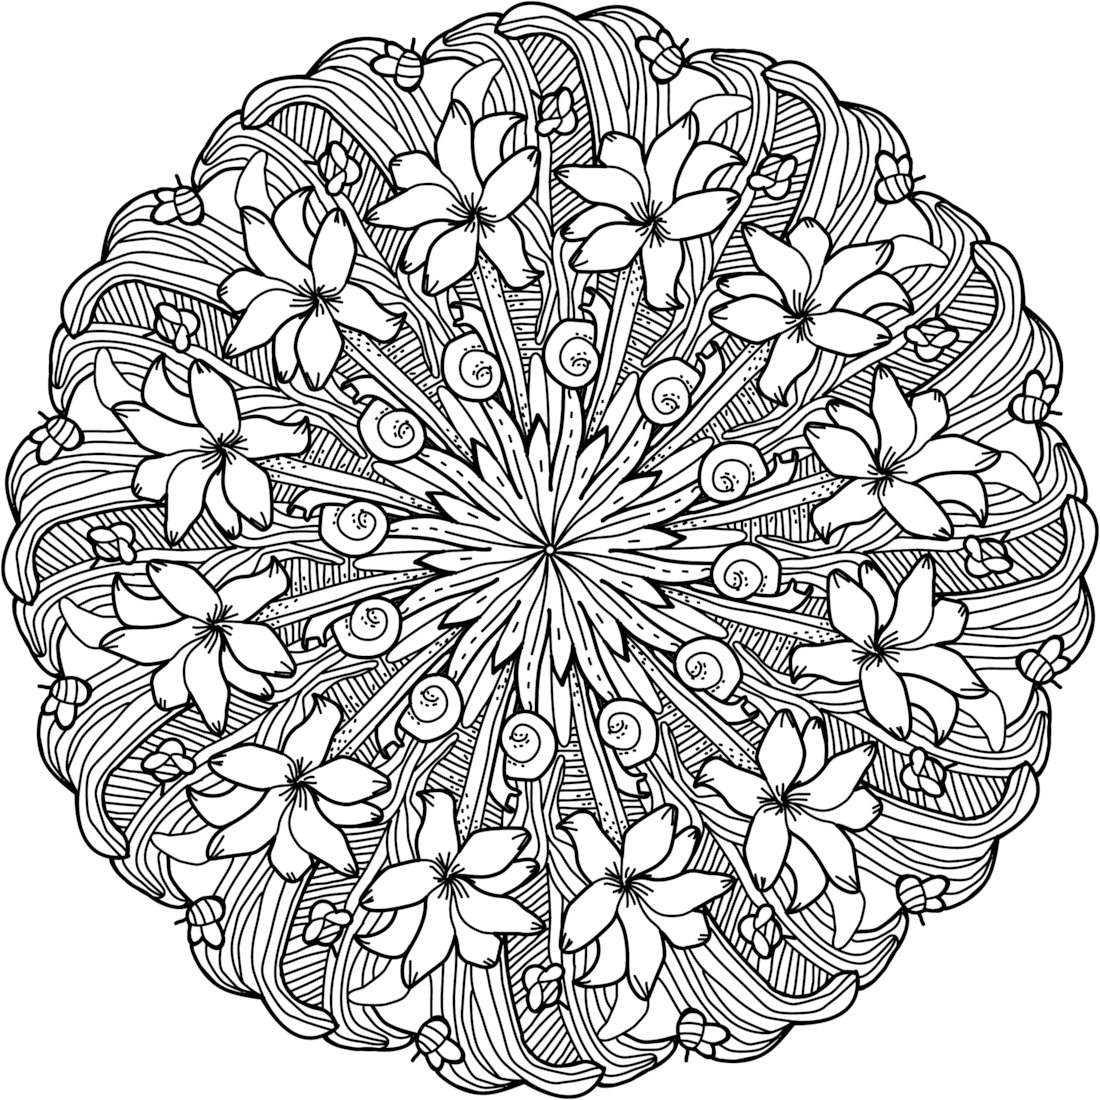 adults coloring pages 10 toothy adult coloring pages printable off the cusp adults coloring pages